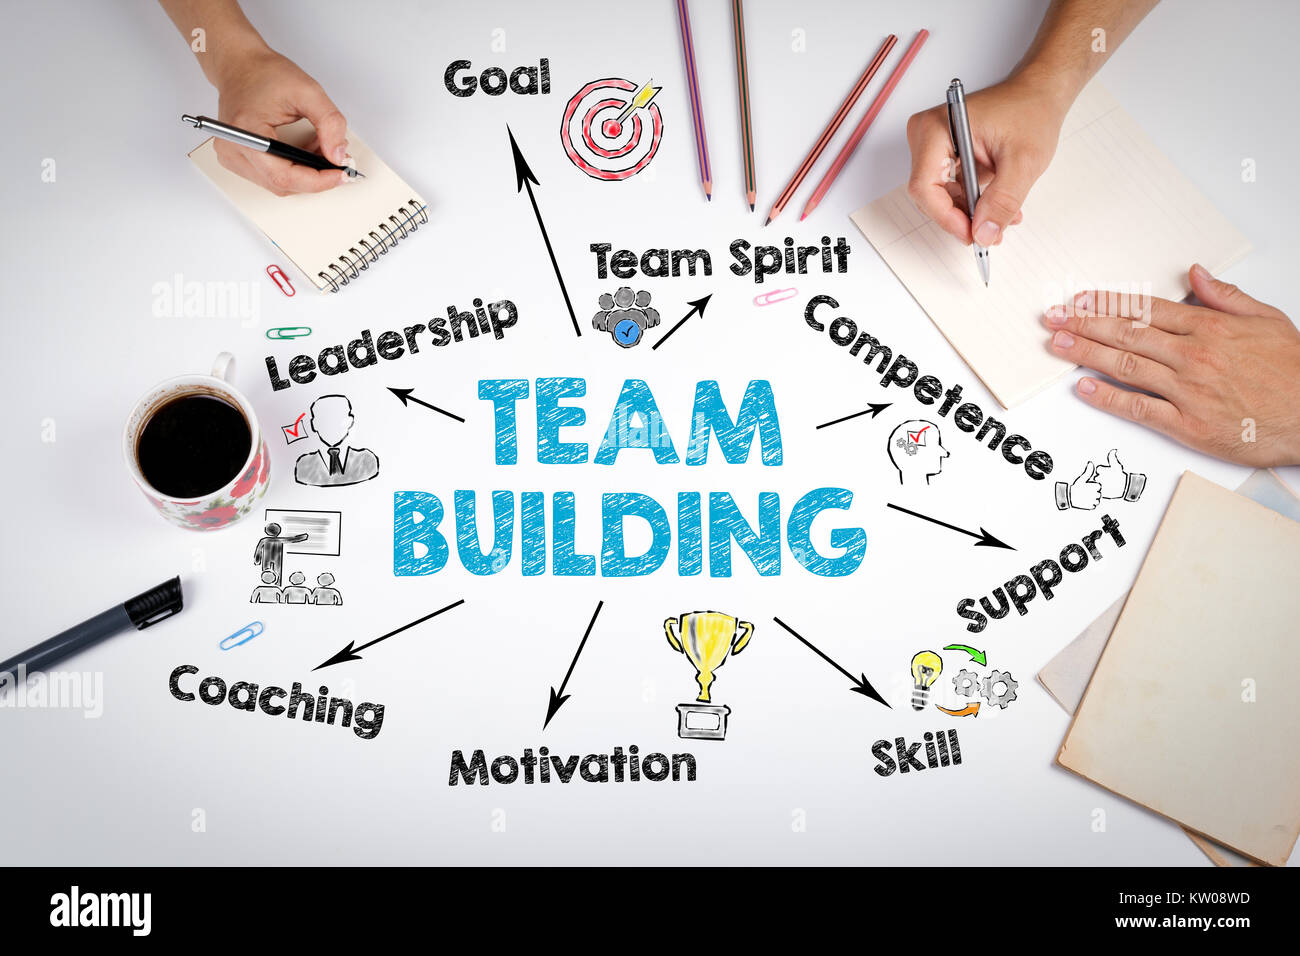 team building Concept. Chart with keywords and icons. The meeting at the white office table - Stock Image